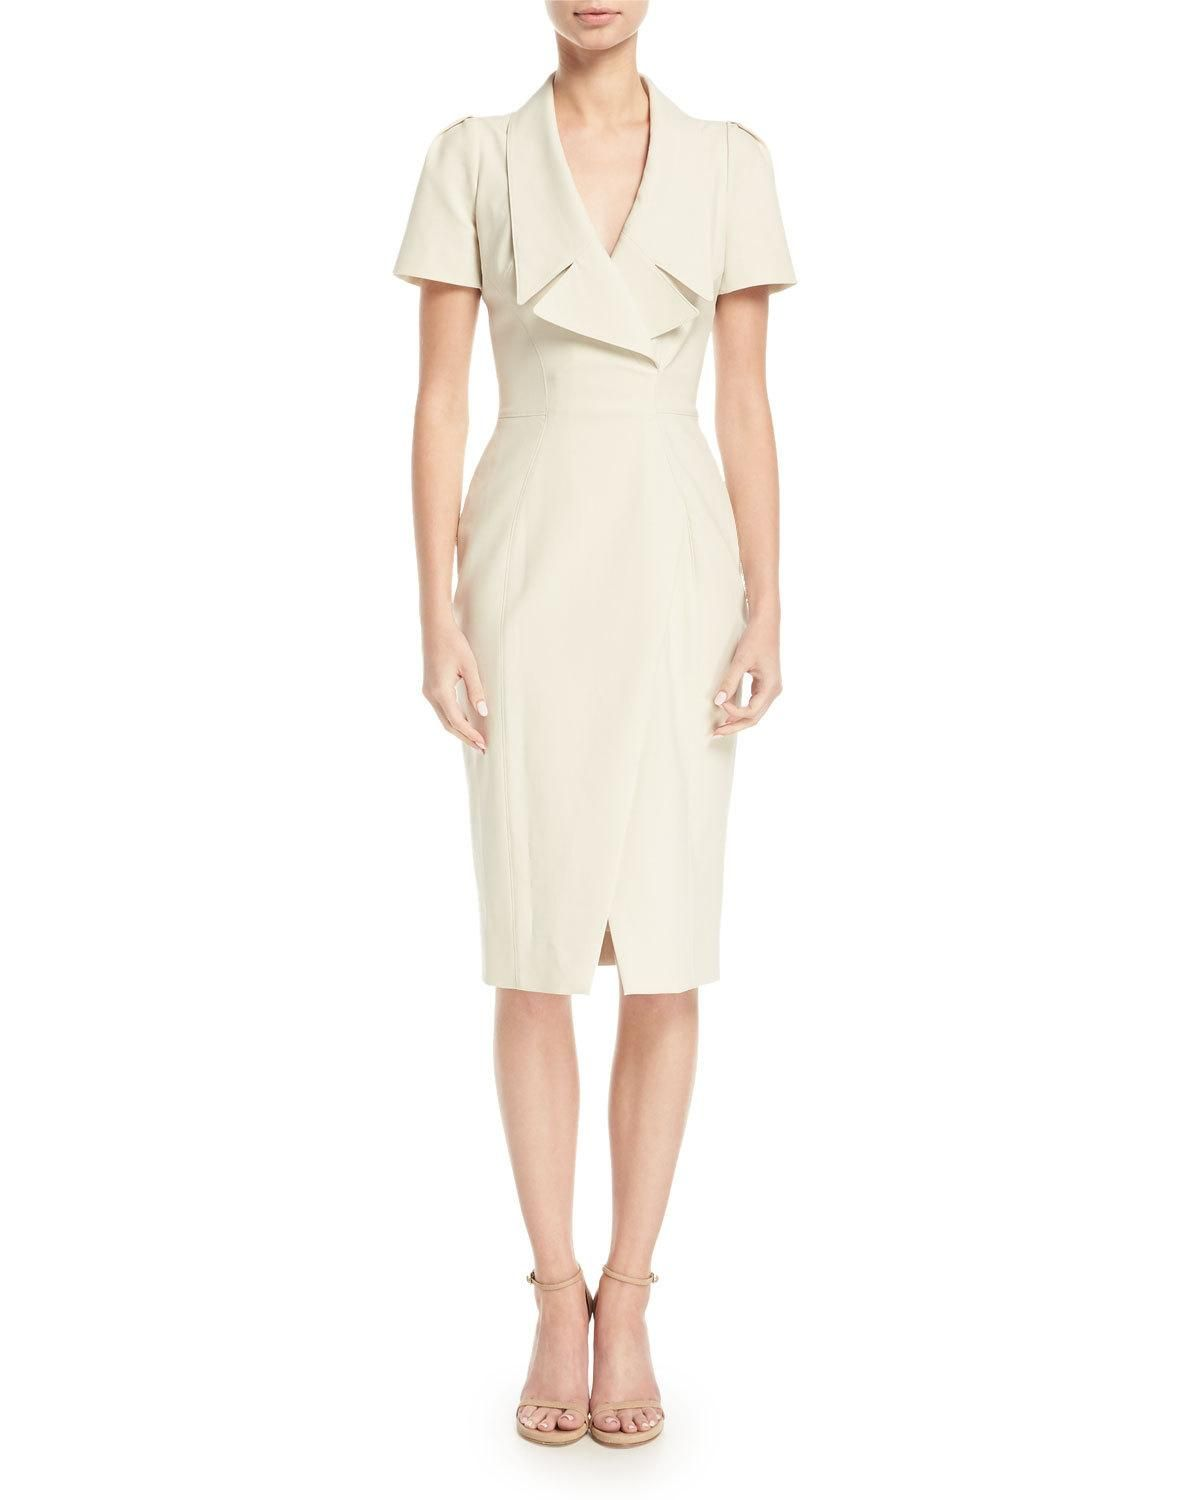 Evening gowns by occasion at neiman marcus zac posen pinterest evening gowns by occasion at neiman marcus junglespirit Choice Image